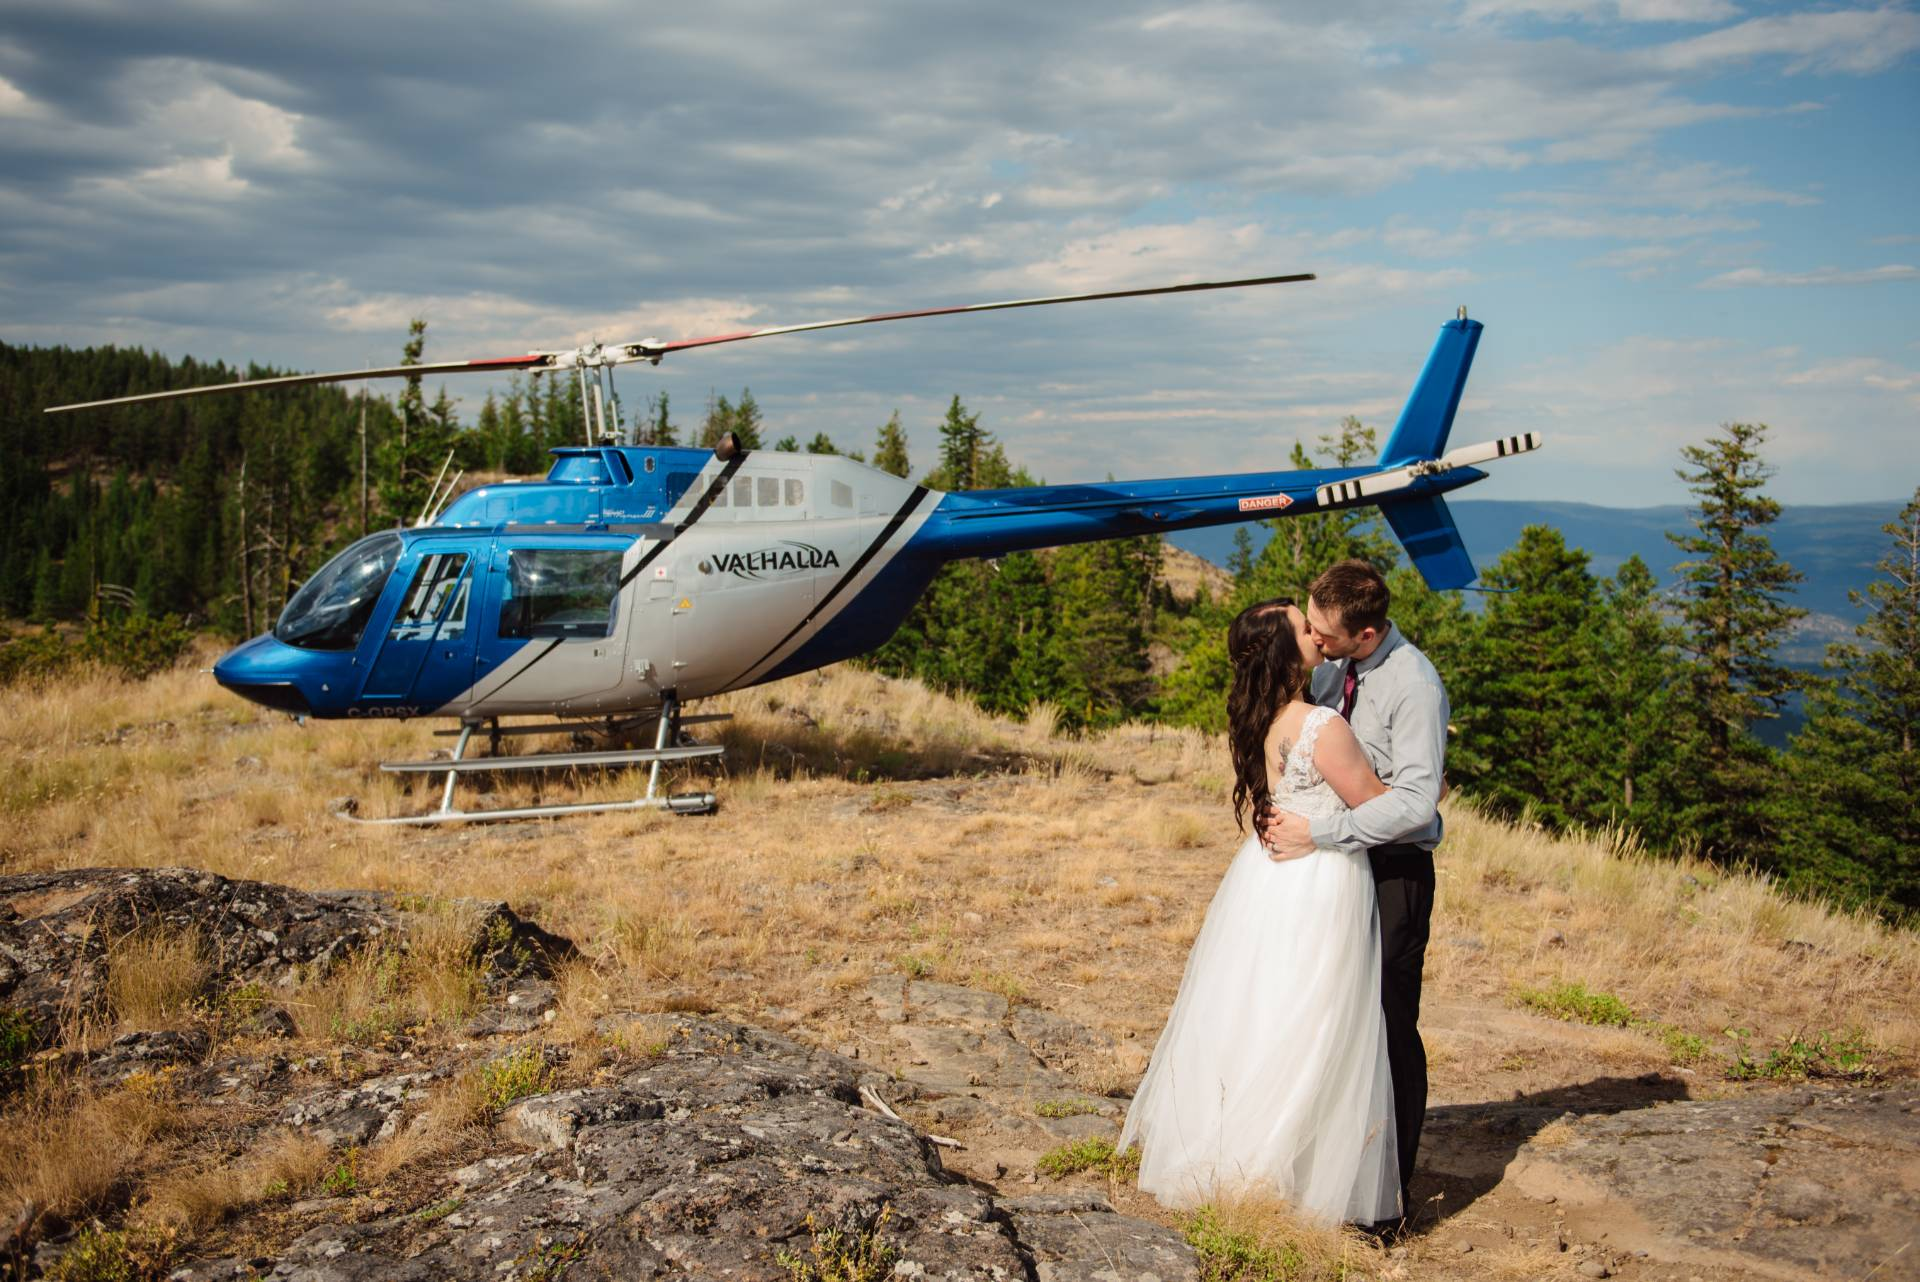 Unique wedding ideas - helciopter wedding day picture next to a helicopter